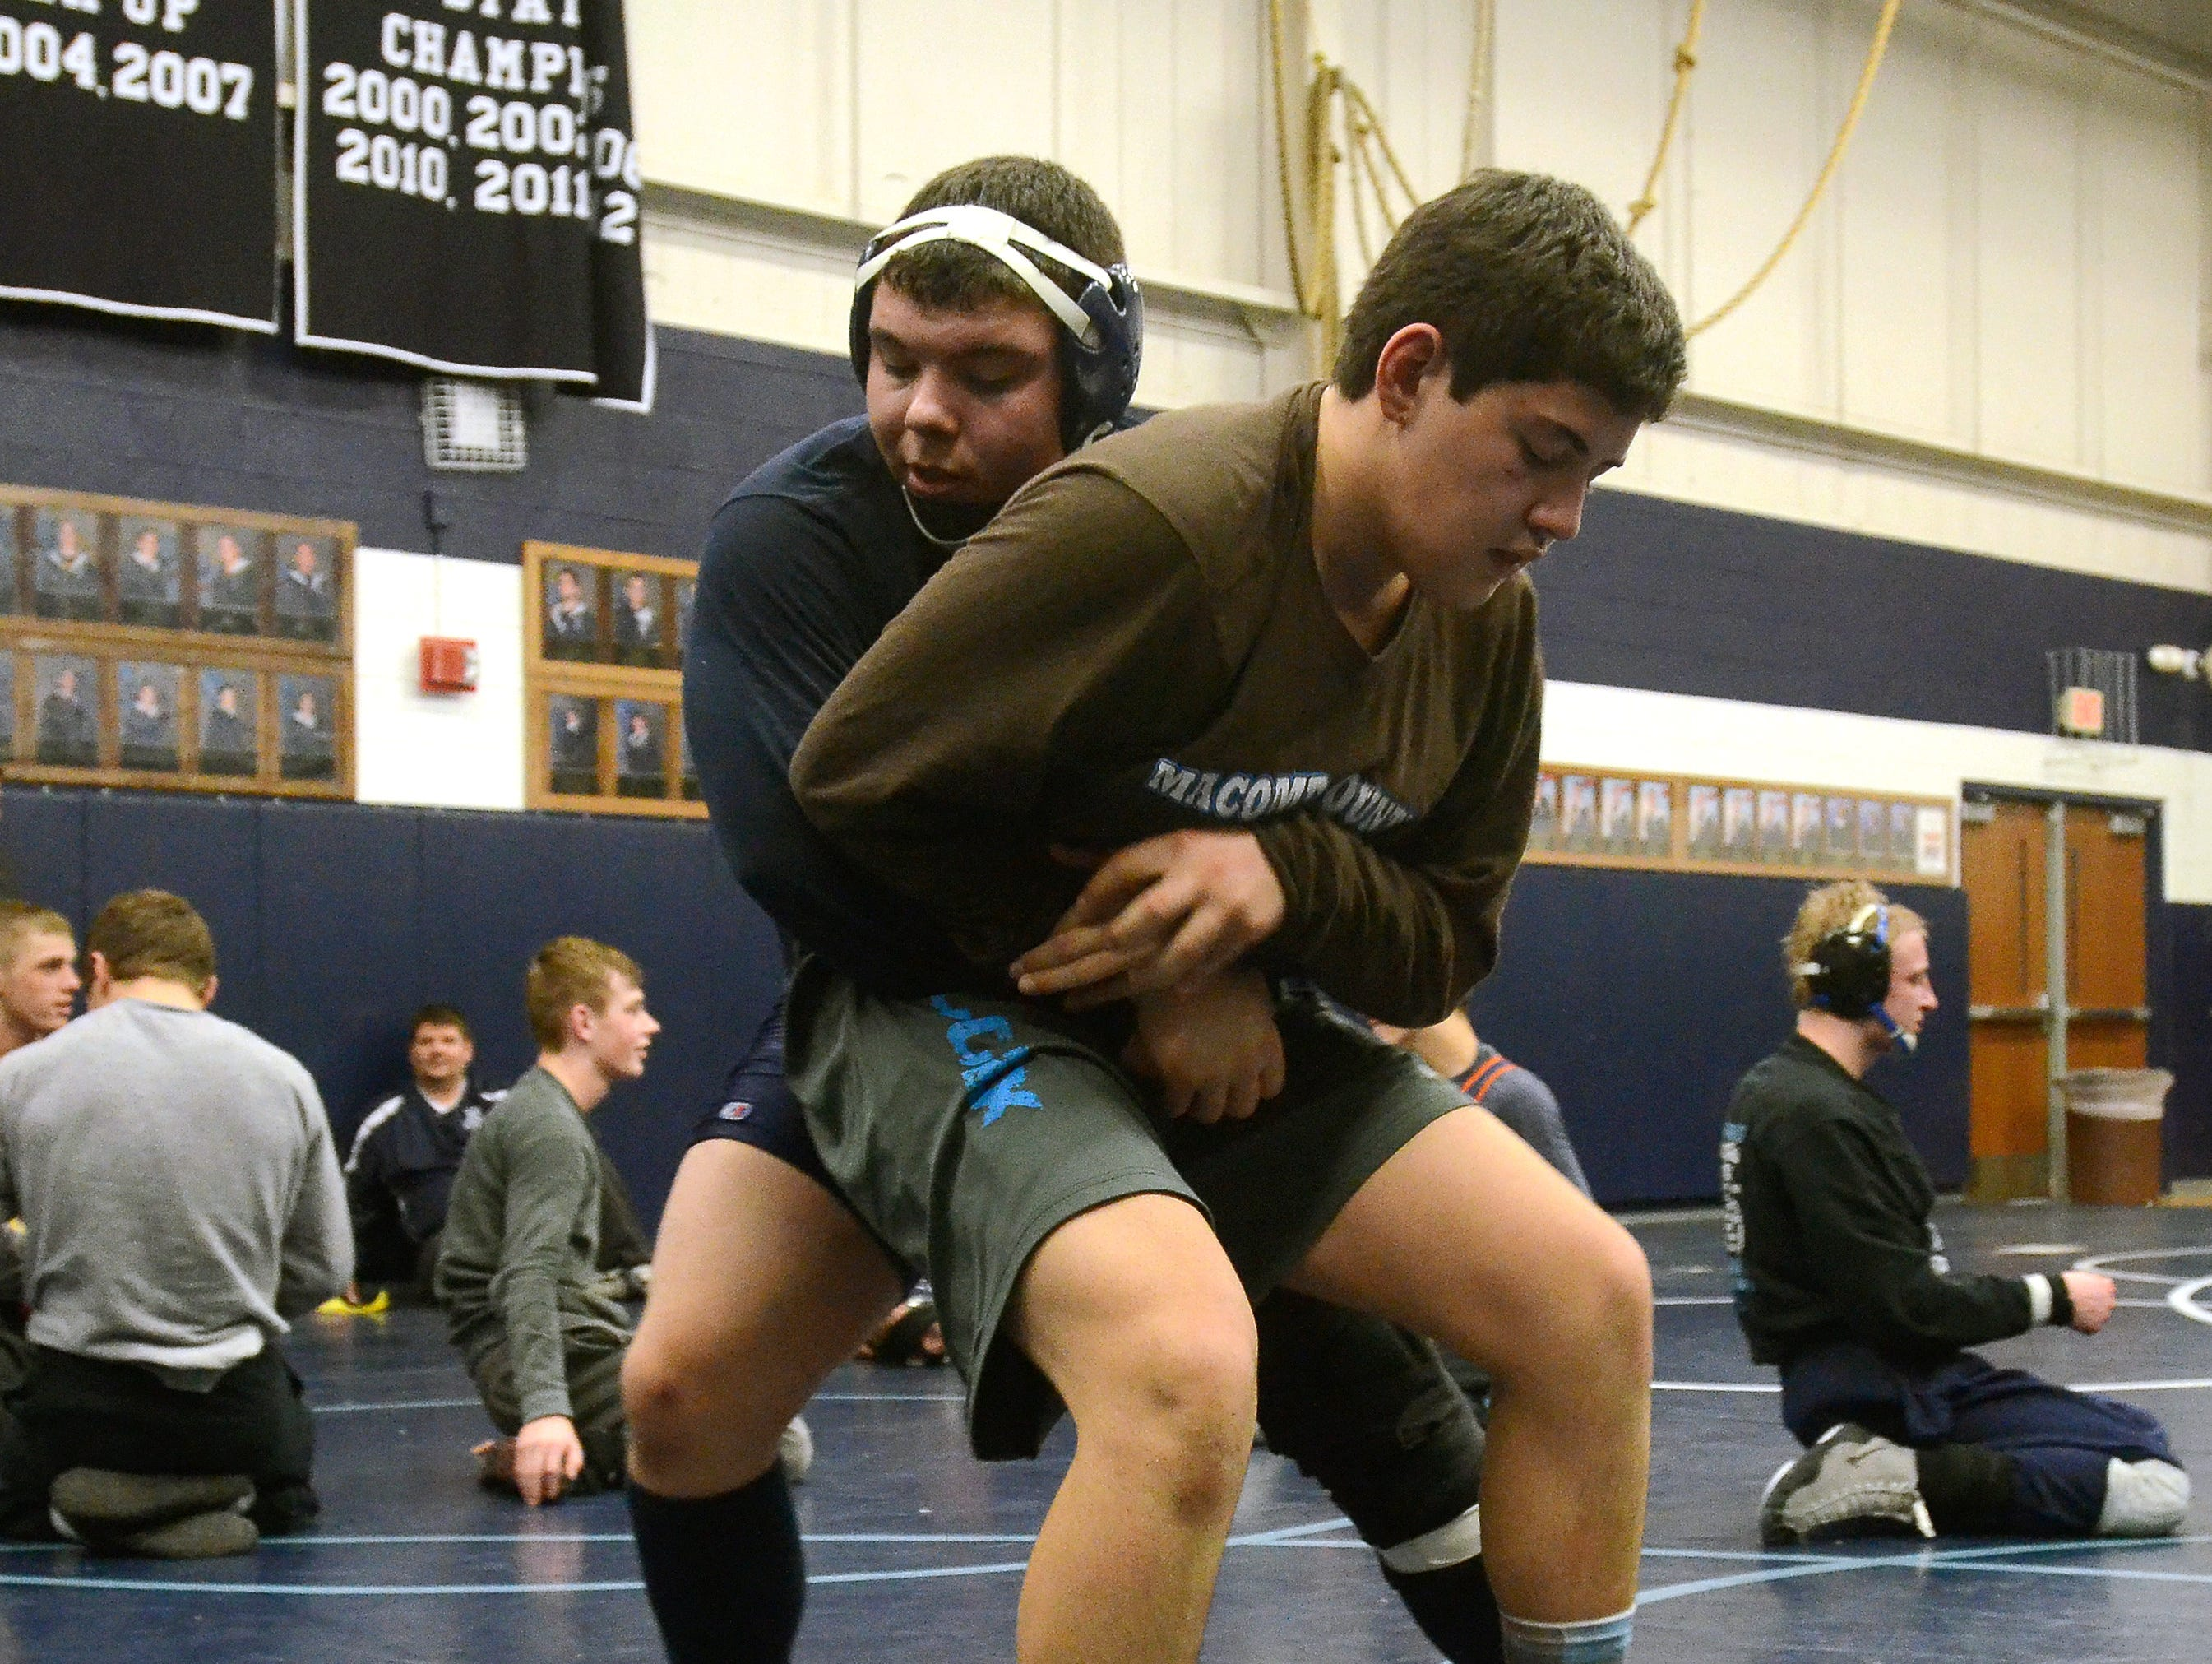 Senior, Anthony Hinojosa, left, goes through drills with Keenan Mrad, Monday, Feb 16, during wrestling practice at Richmond High School.